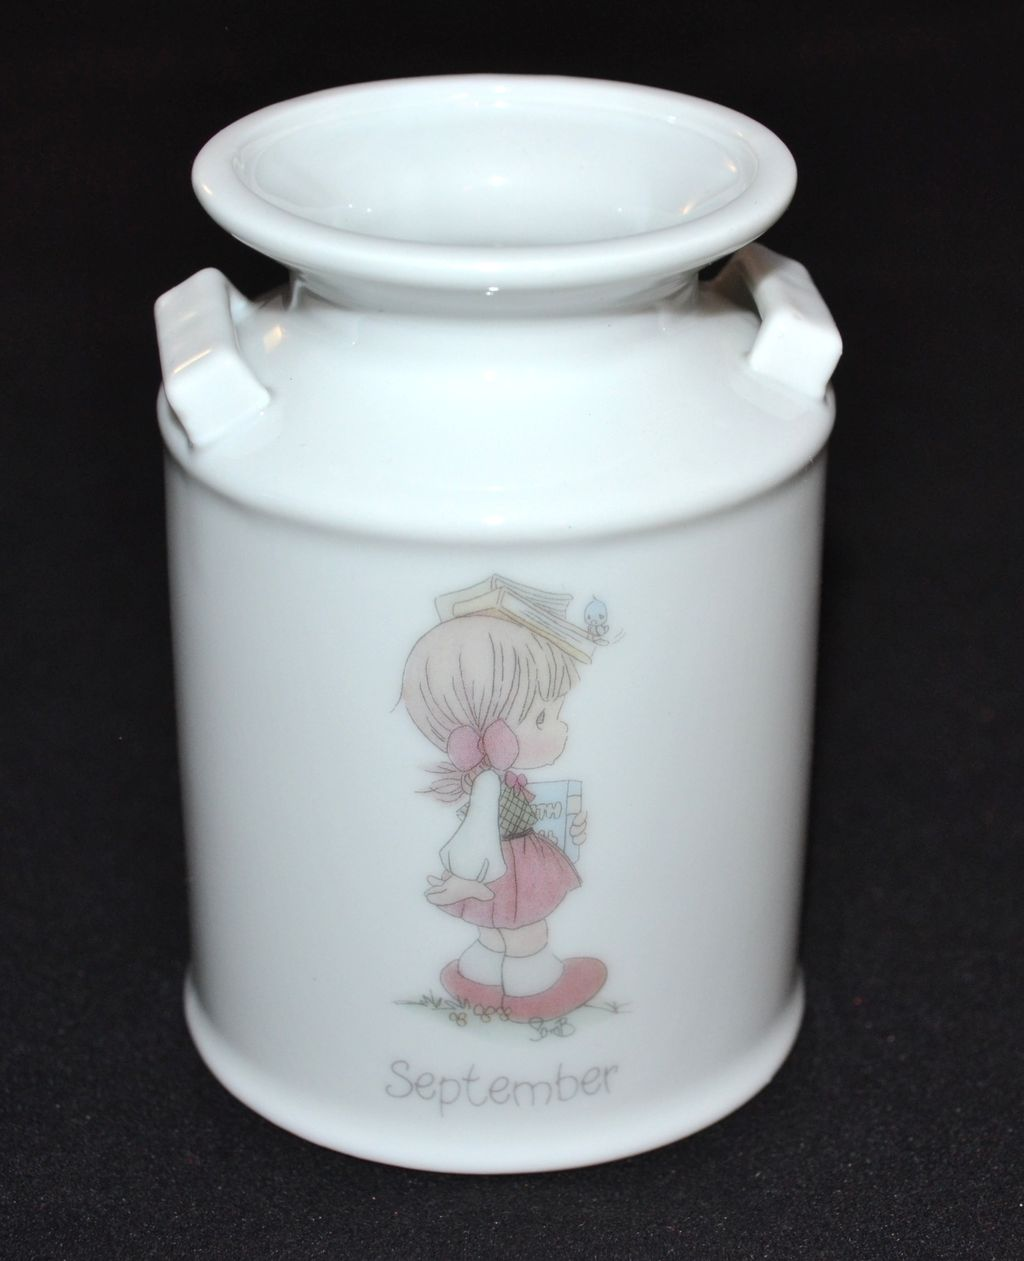 1987 Precious Moments ~ Porcelain September Crock Style Vase Collectible